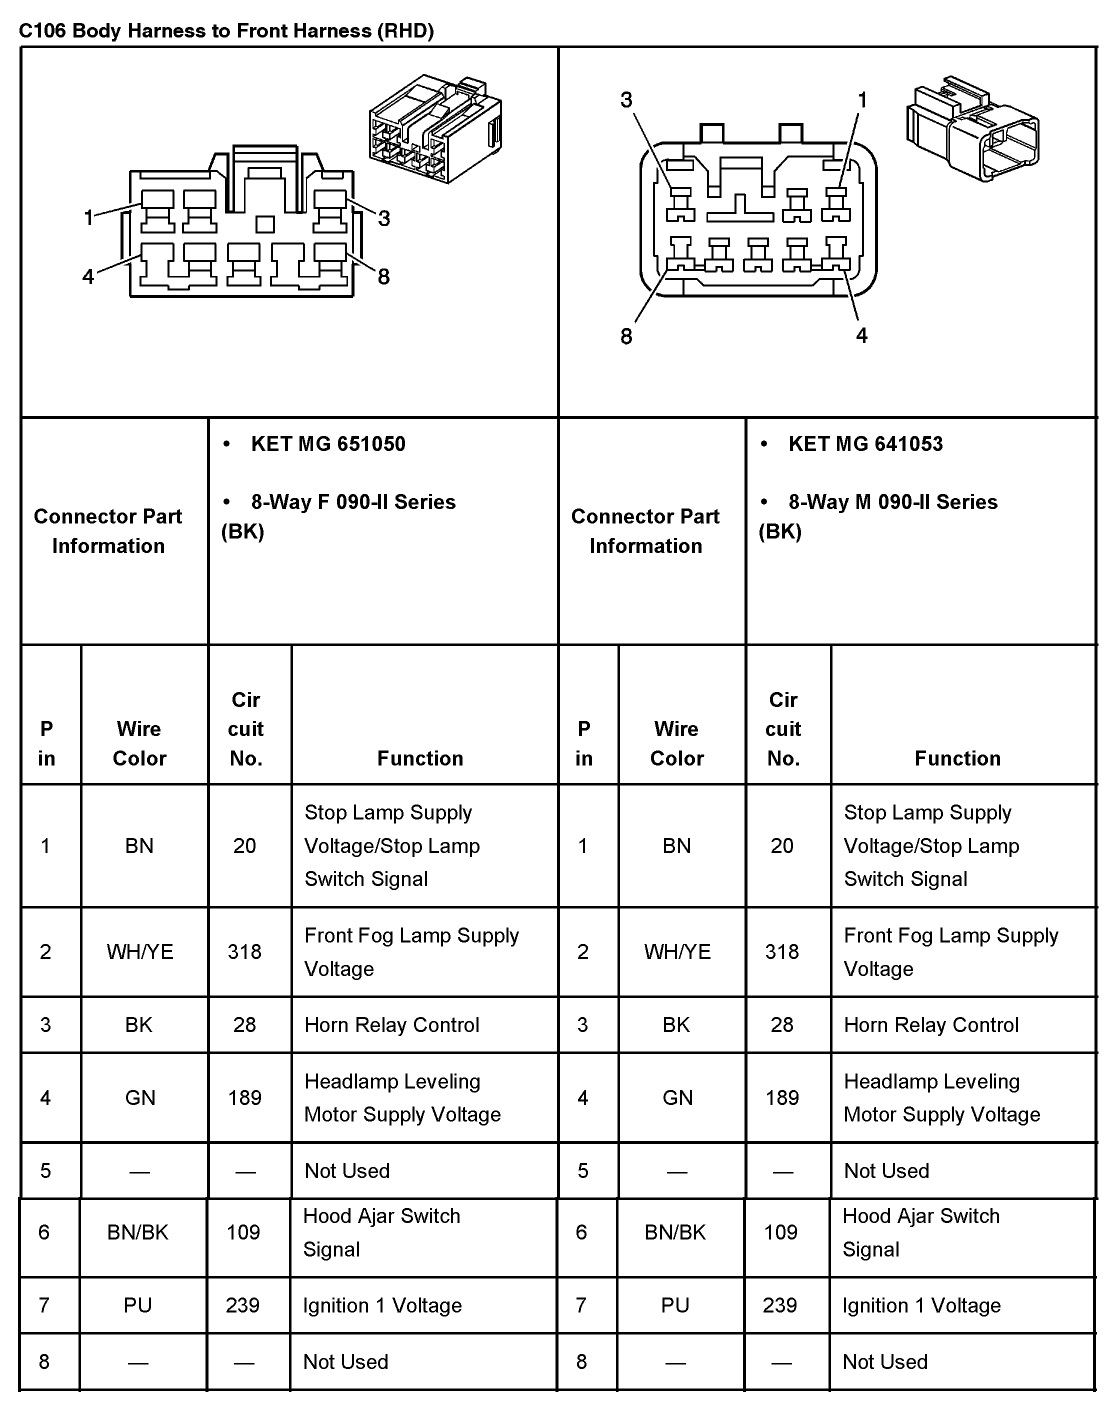 2006 Chevy Cobalt Wiring Diagram | Download Wiring Diagram on 2006 chevy impala recalls, 2005 chevy colorado fuse diagram, 2006 chevy trailblazer fuse diagram, 2006 chevy impala parking brake, 2006 chevy impala motor, 2006 chevy impala oxygen sensors, 2006 chevy impala alternator, 1995 chevy impala fuse diagram, 2006 chevy impala heater, 2006 chevy impala thermostat, 2006 chevy cobalt fuse box location, 2006 chevy impala remote key, 06 impala fuse diagram, 2006 impala fuse box diagram, 2006 chevy avalanche fuse diagram, 2006 impala fuse panel wiring diagram, 2006 chevy impala door, 2006 chevy impala radio, 2006 chevy silverado 2500hd fuse diagram, 2003 impala fuse box diagram,